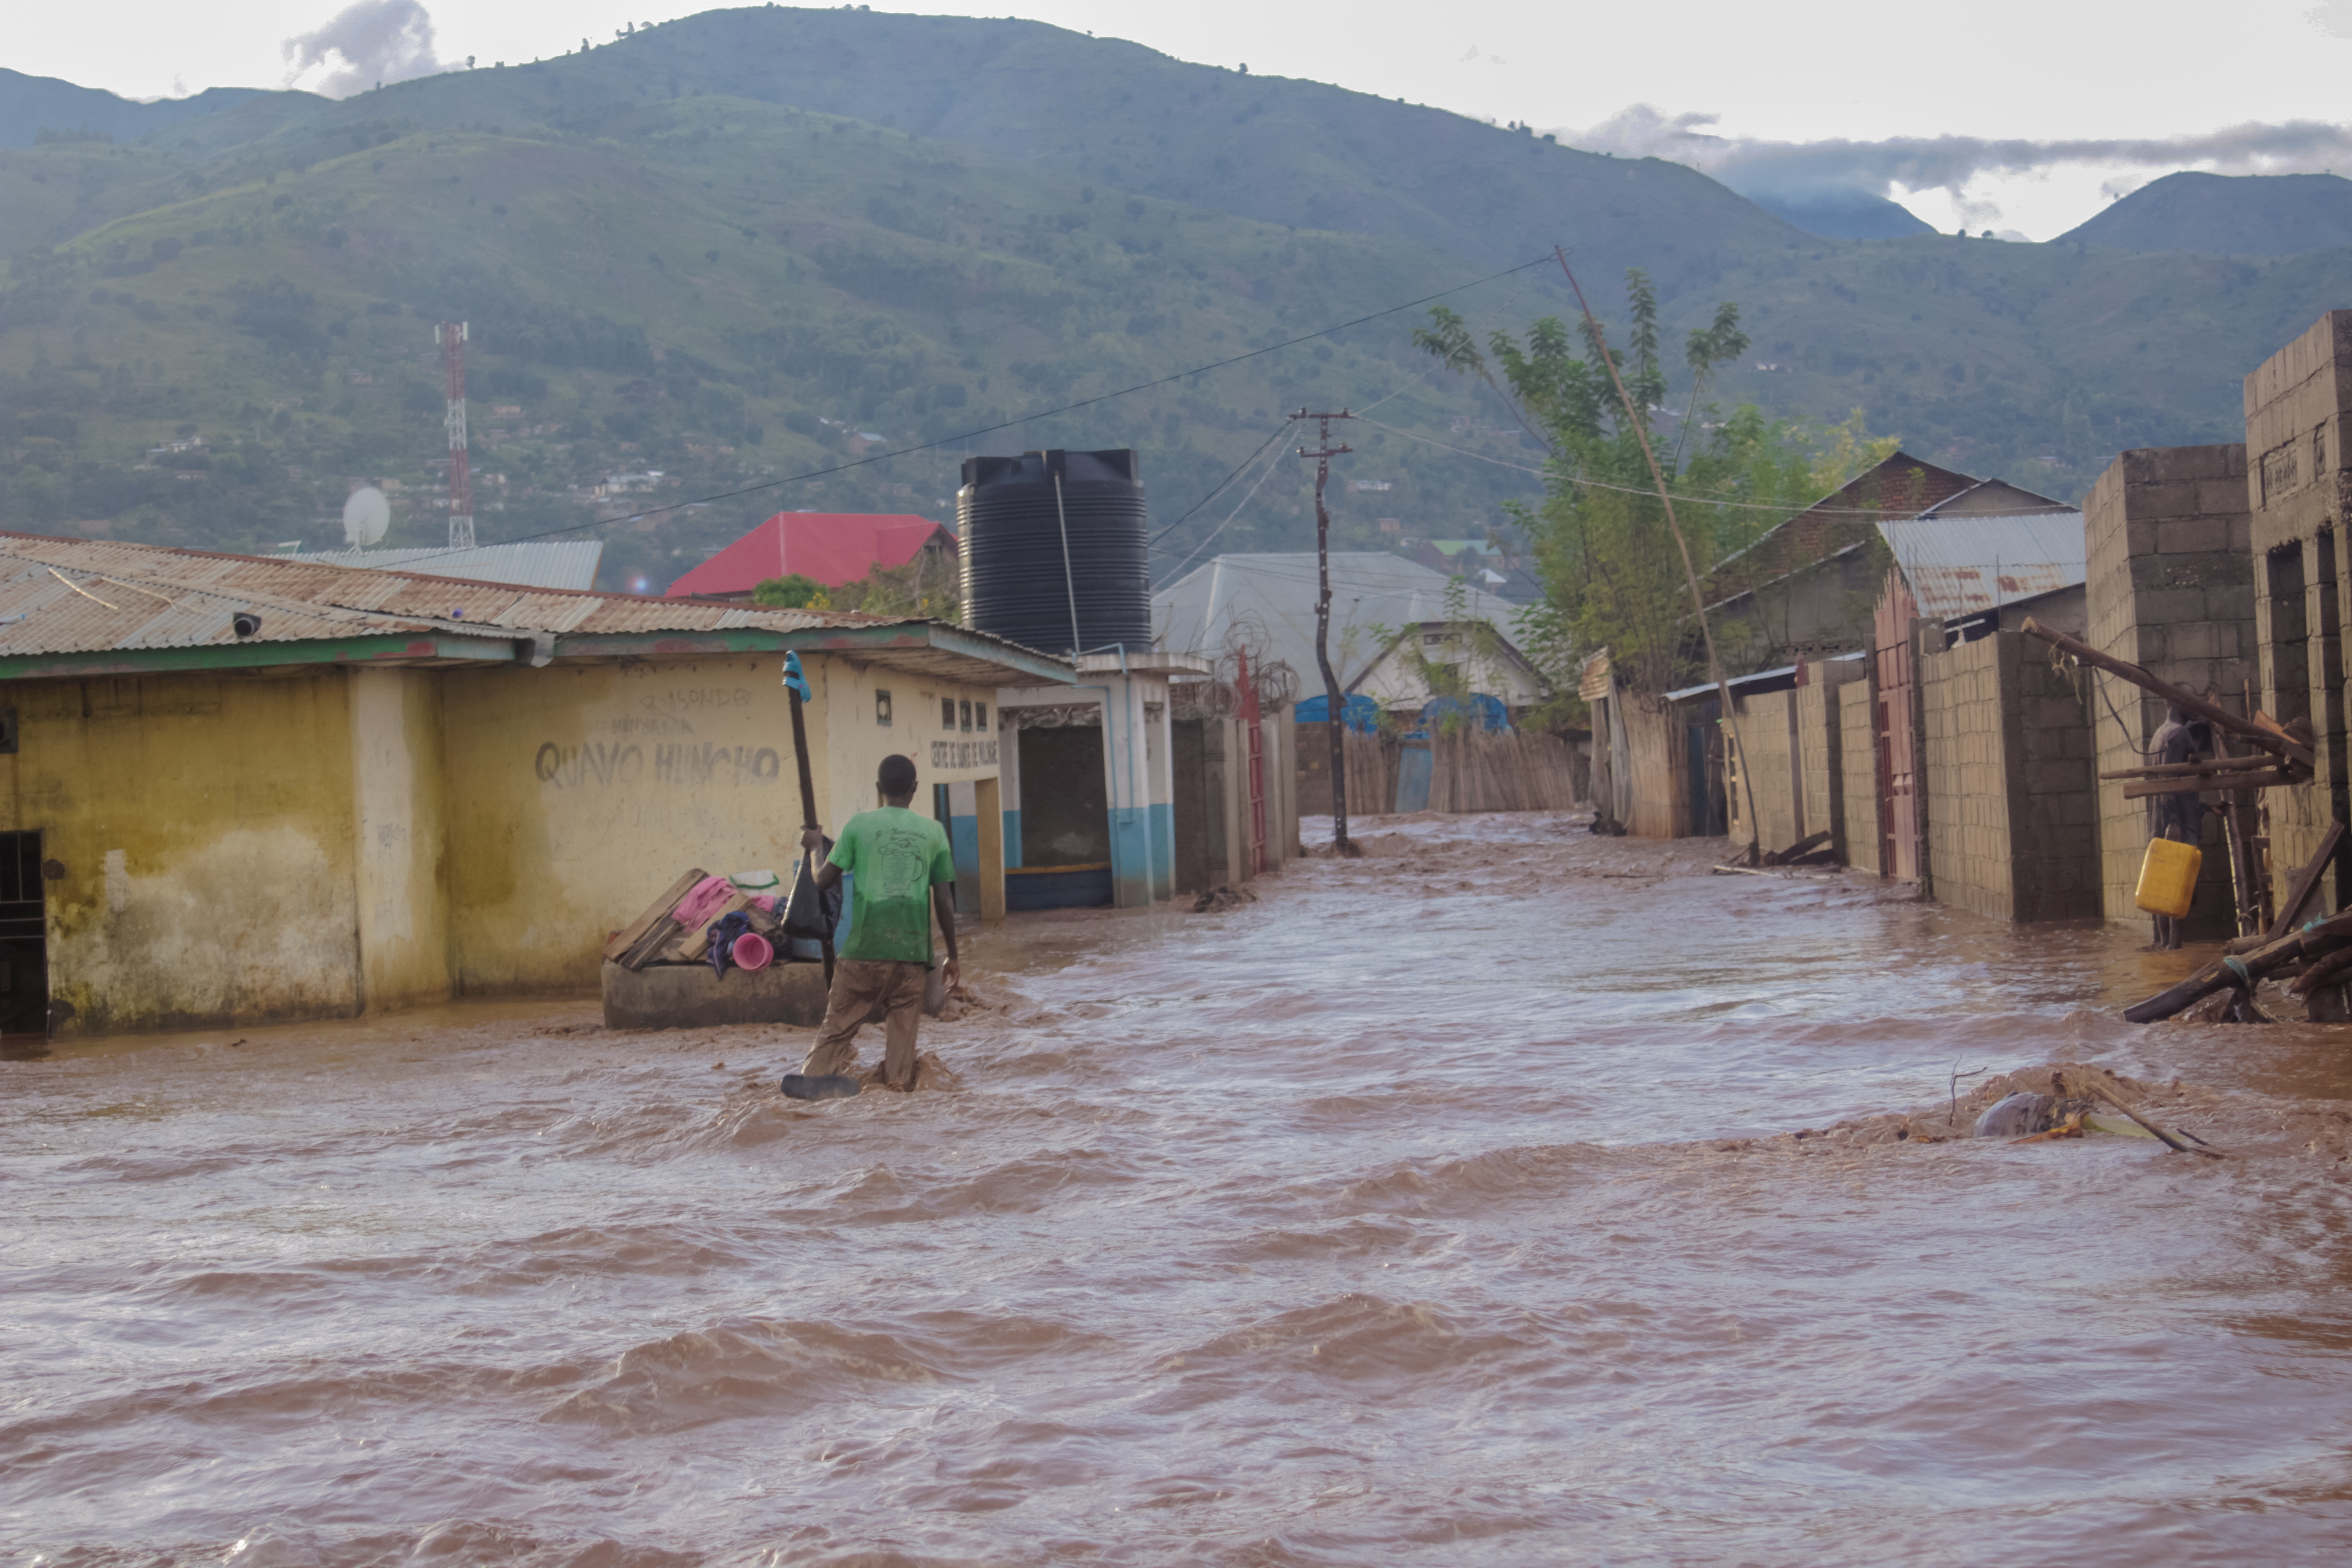 Massive floods in DRC's South Kivu impact 80,000 people, kill dozens